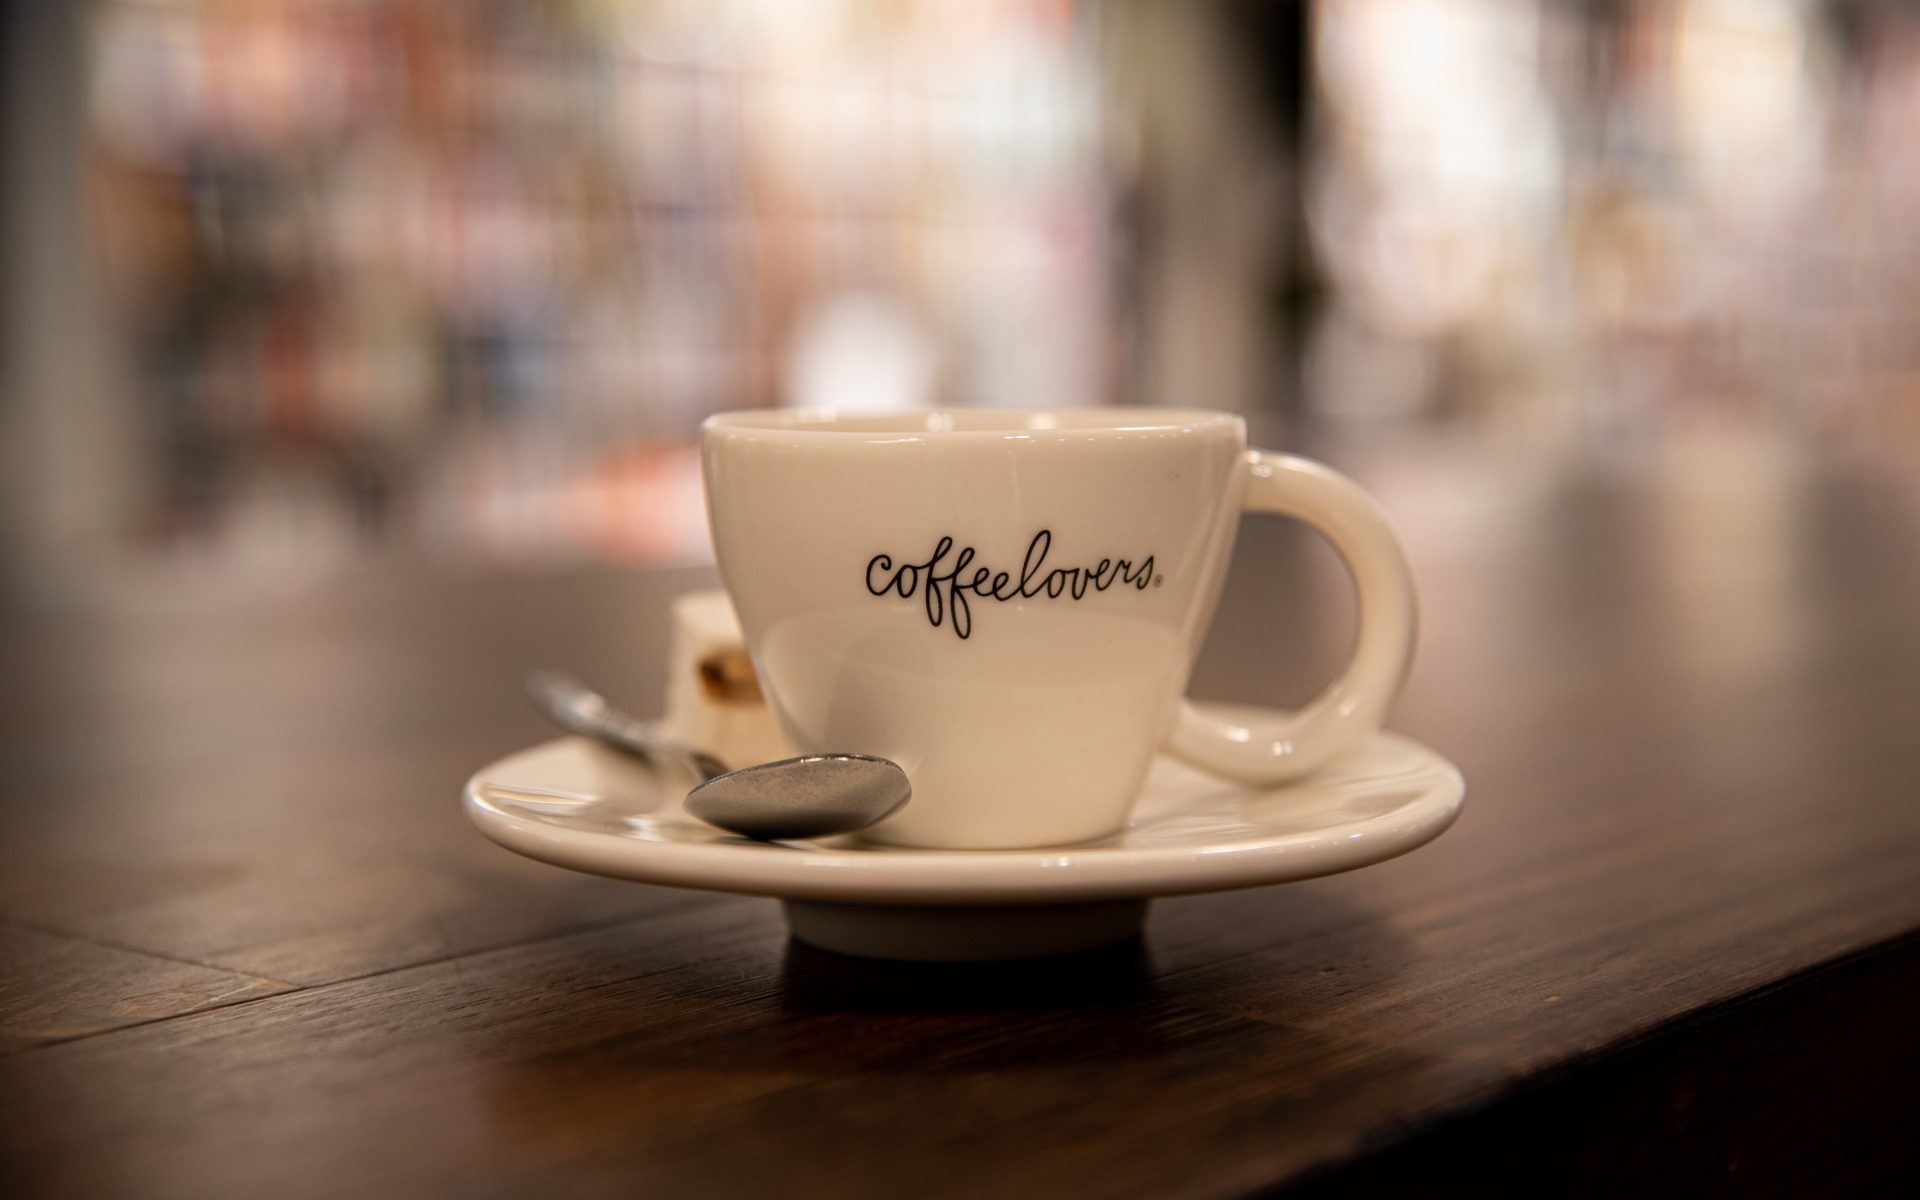 Coffeelovers Eindhoven Eindhoven